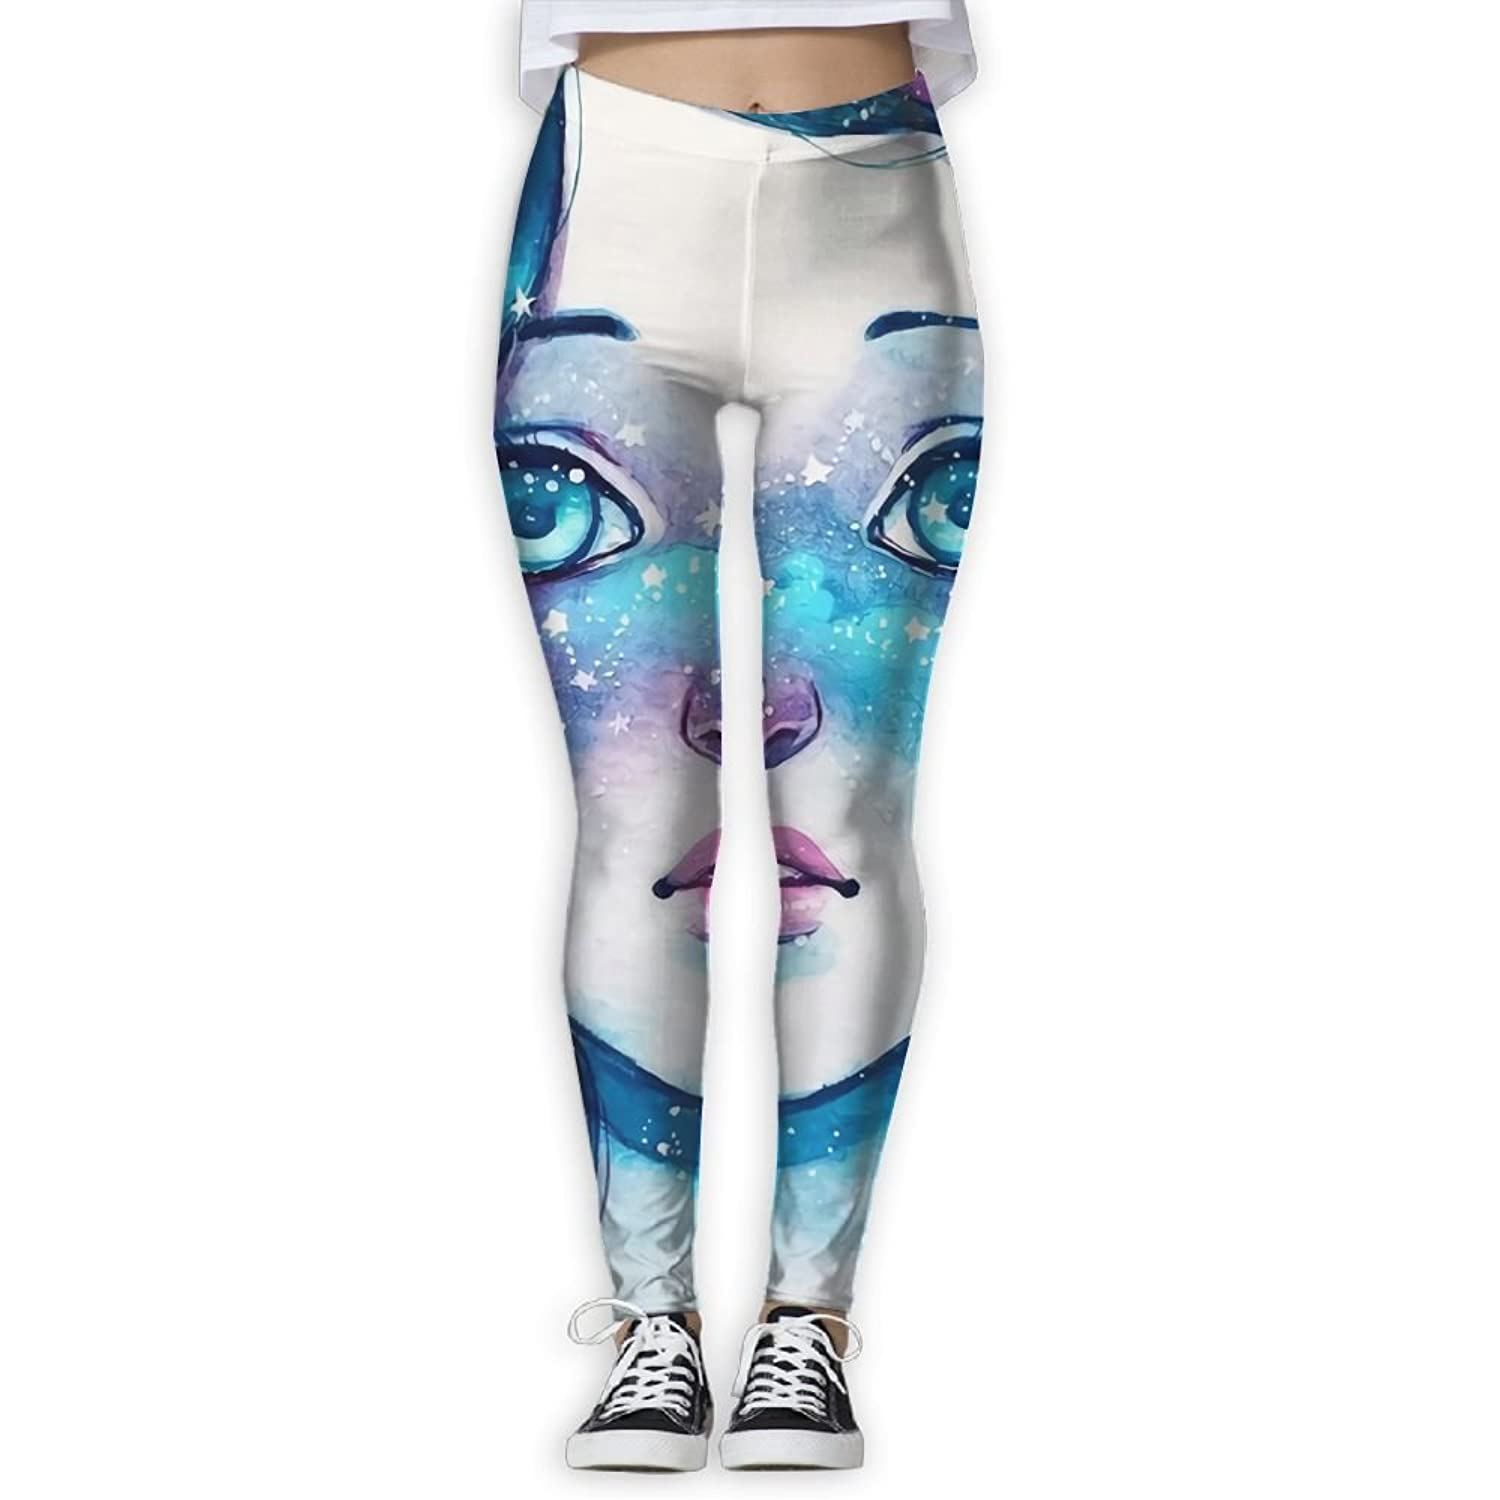 Doppyee Surprised Girl Printing Compression Leggings Pants Tights For Women S-XL